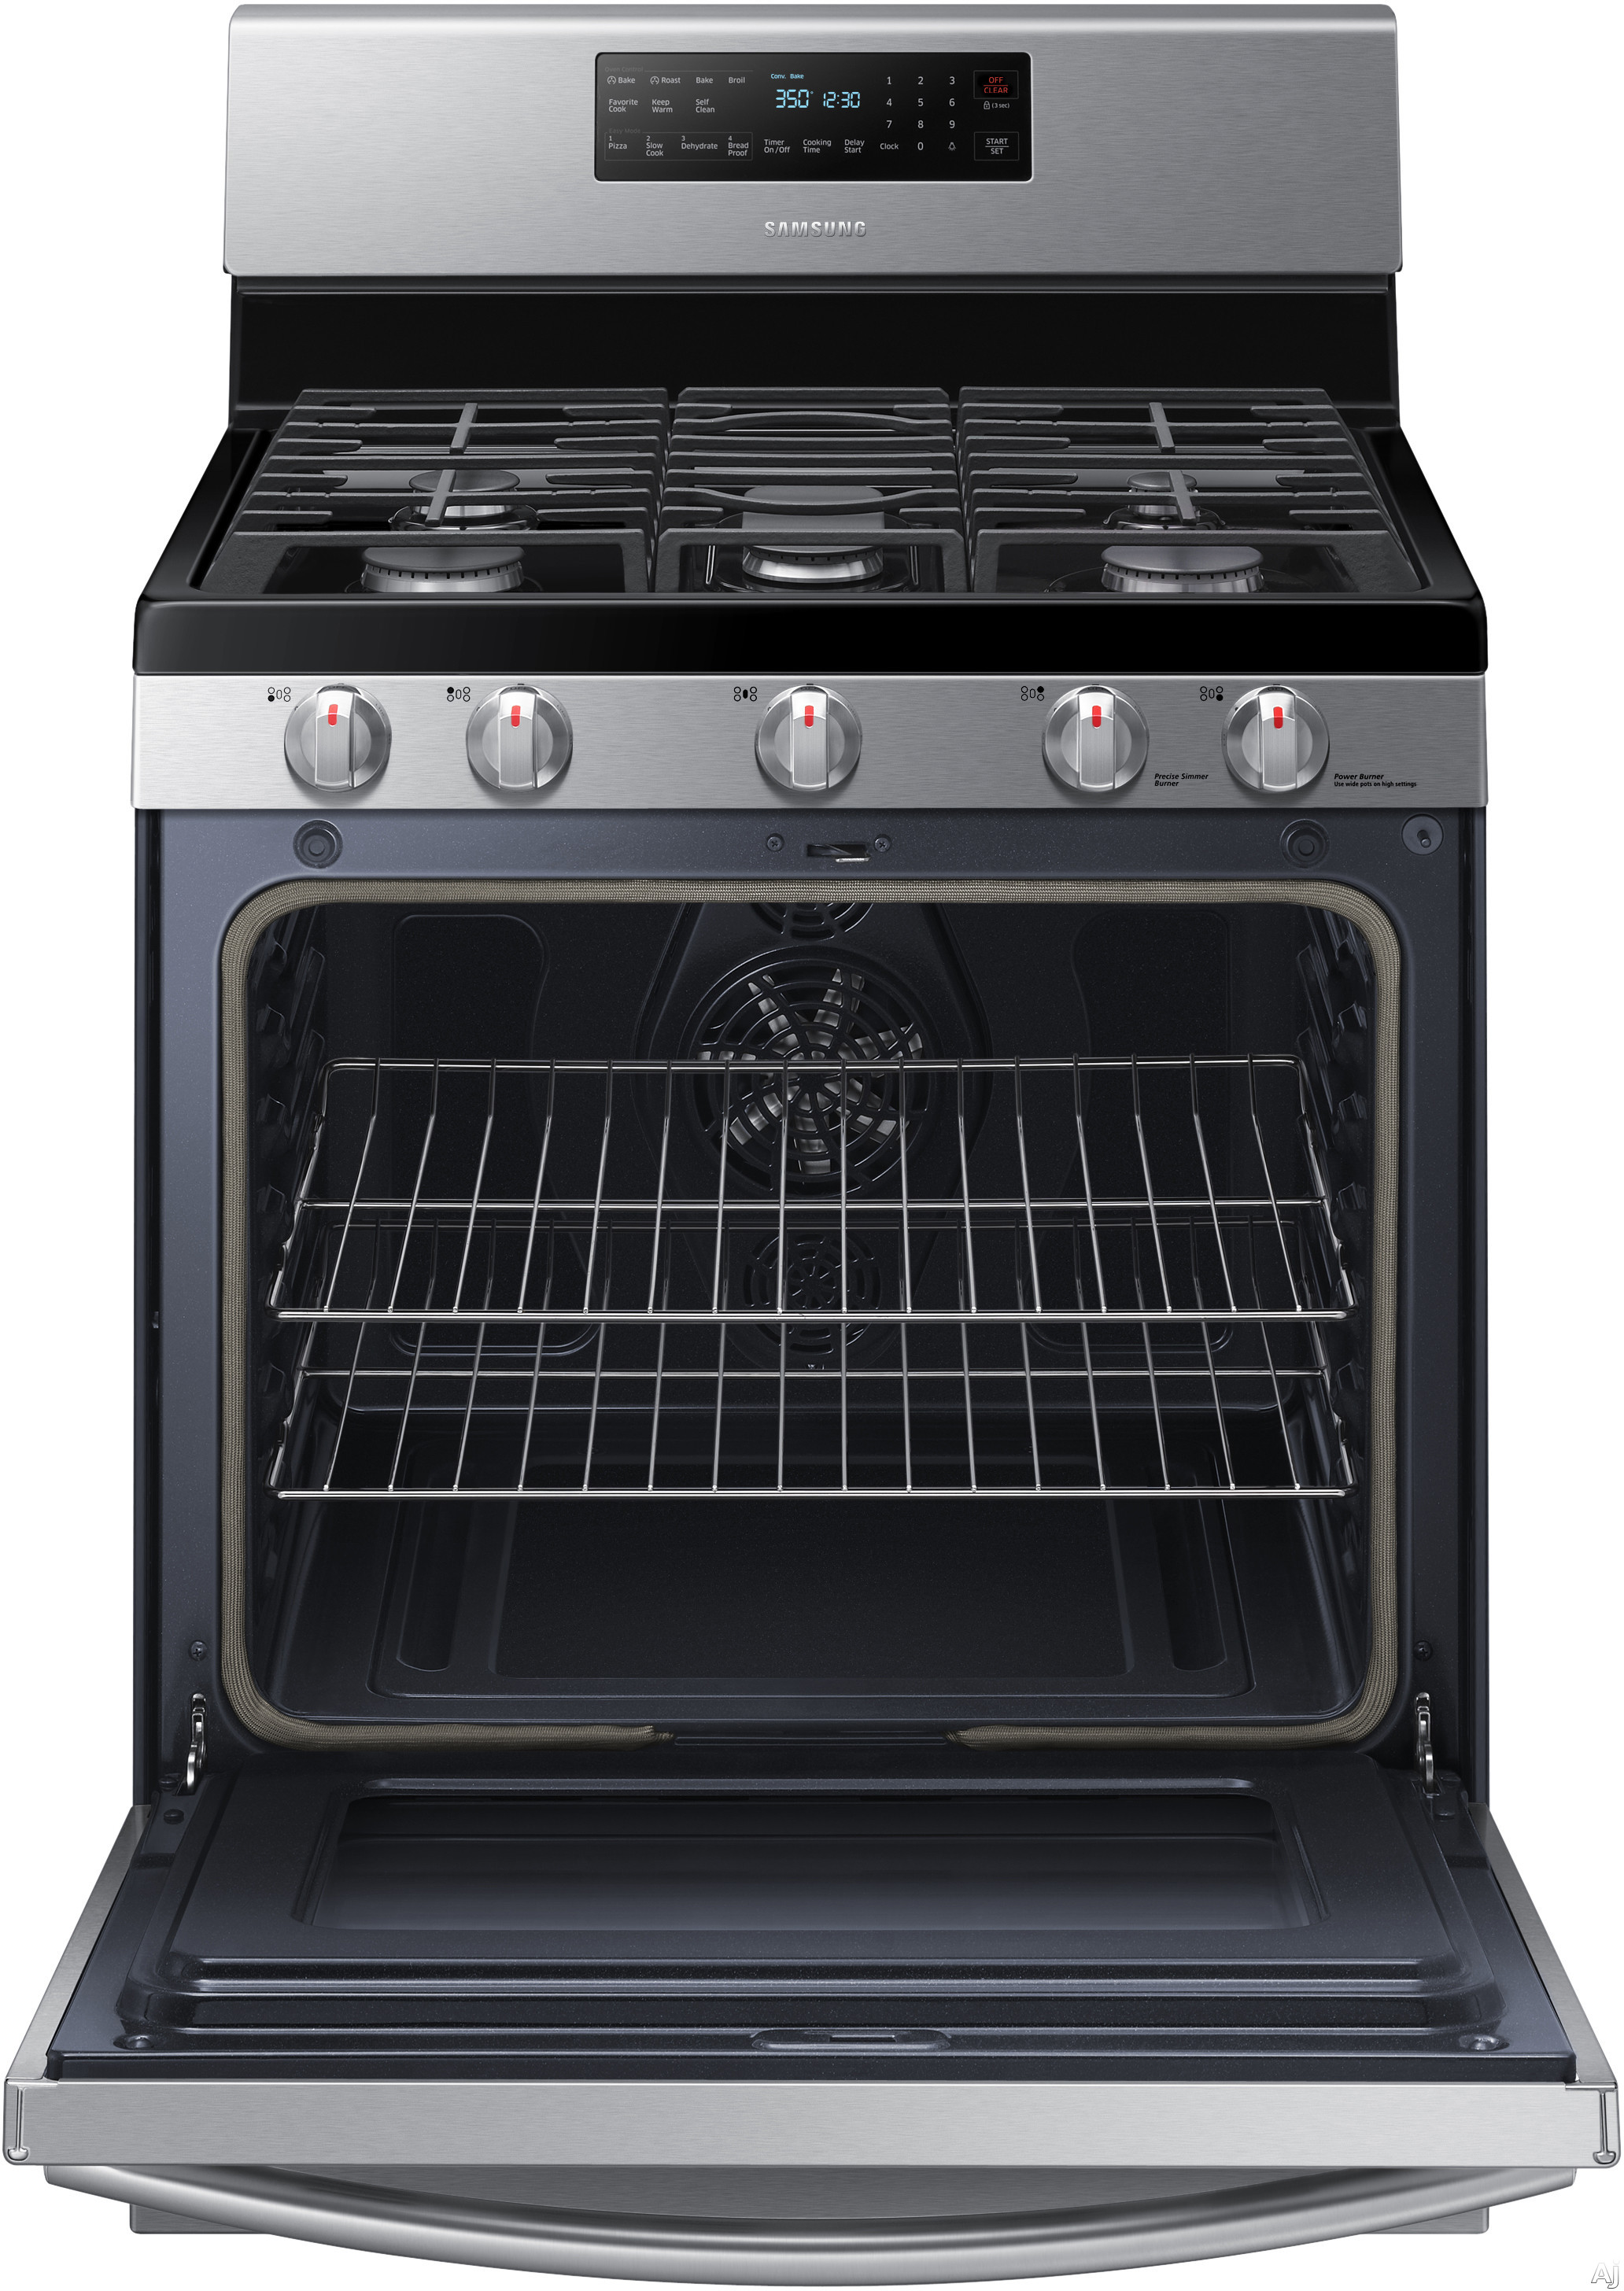 Samsung Nx58h5600ss 30 Quot Freestanding Gas Range With 5